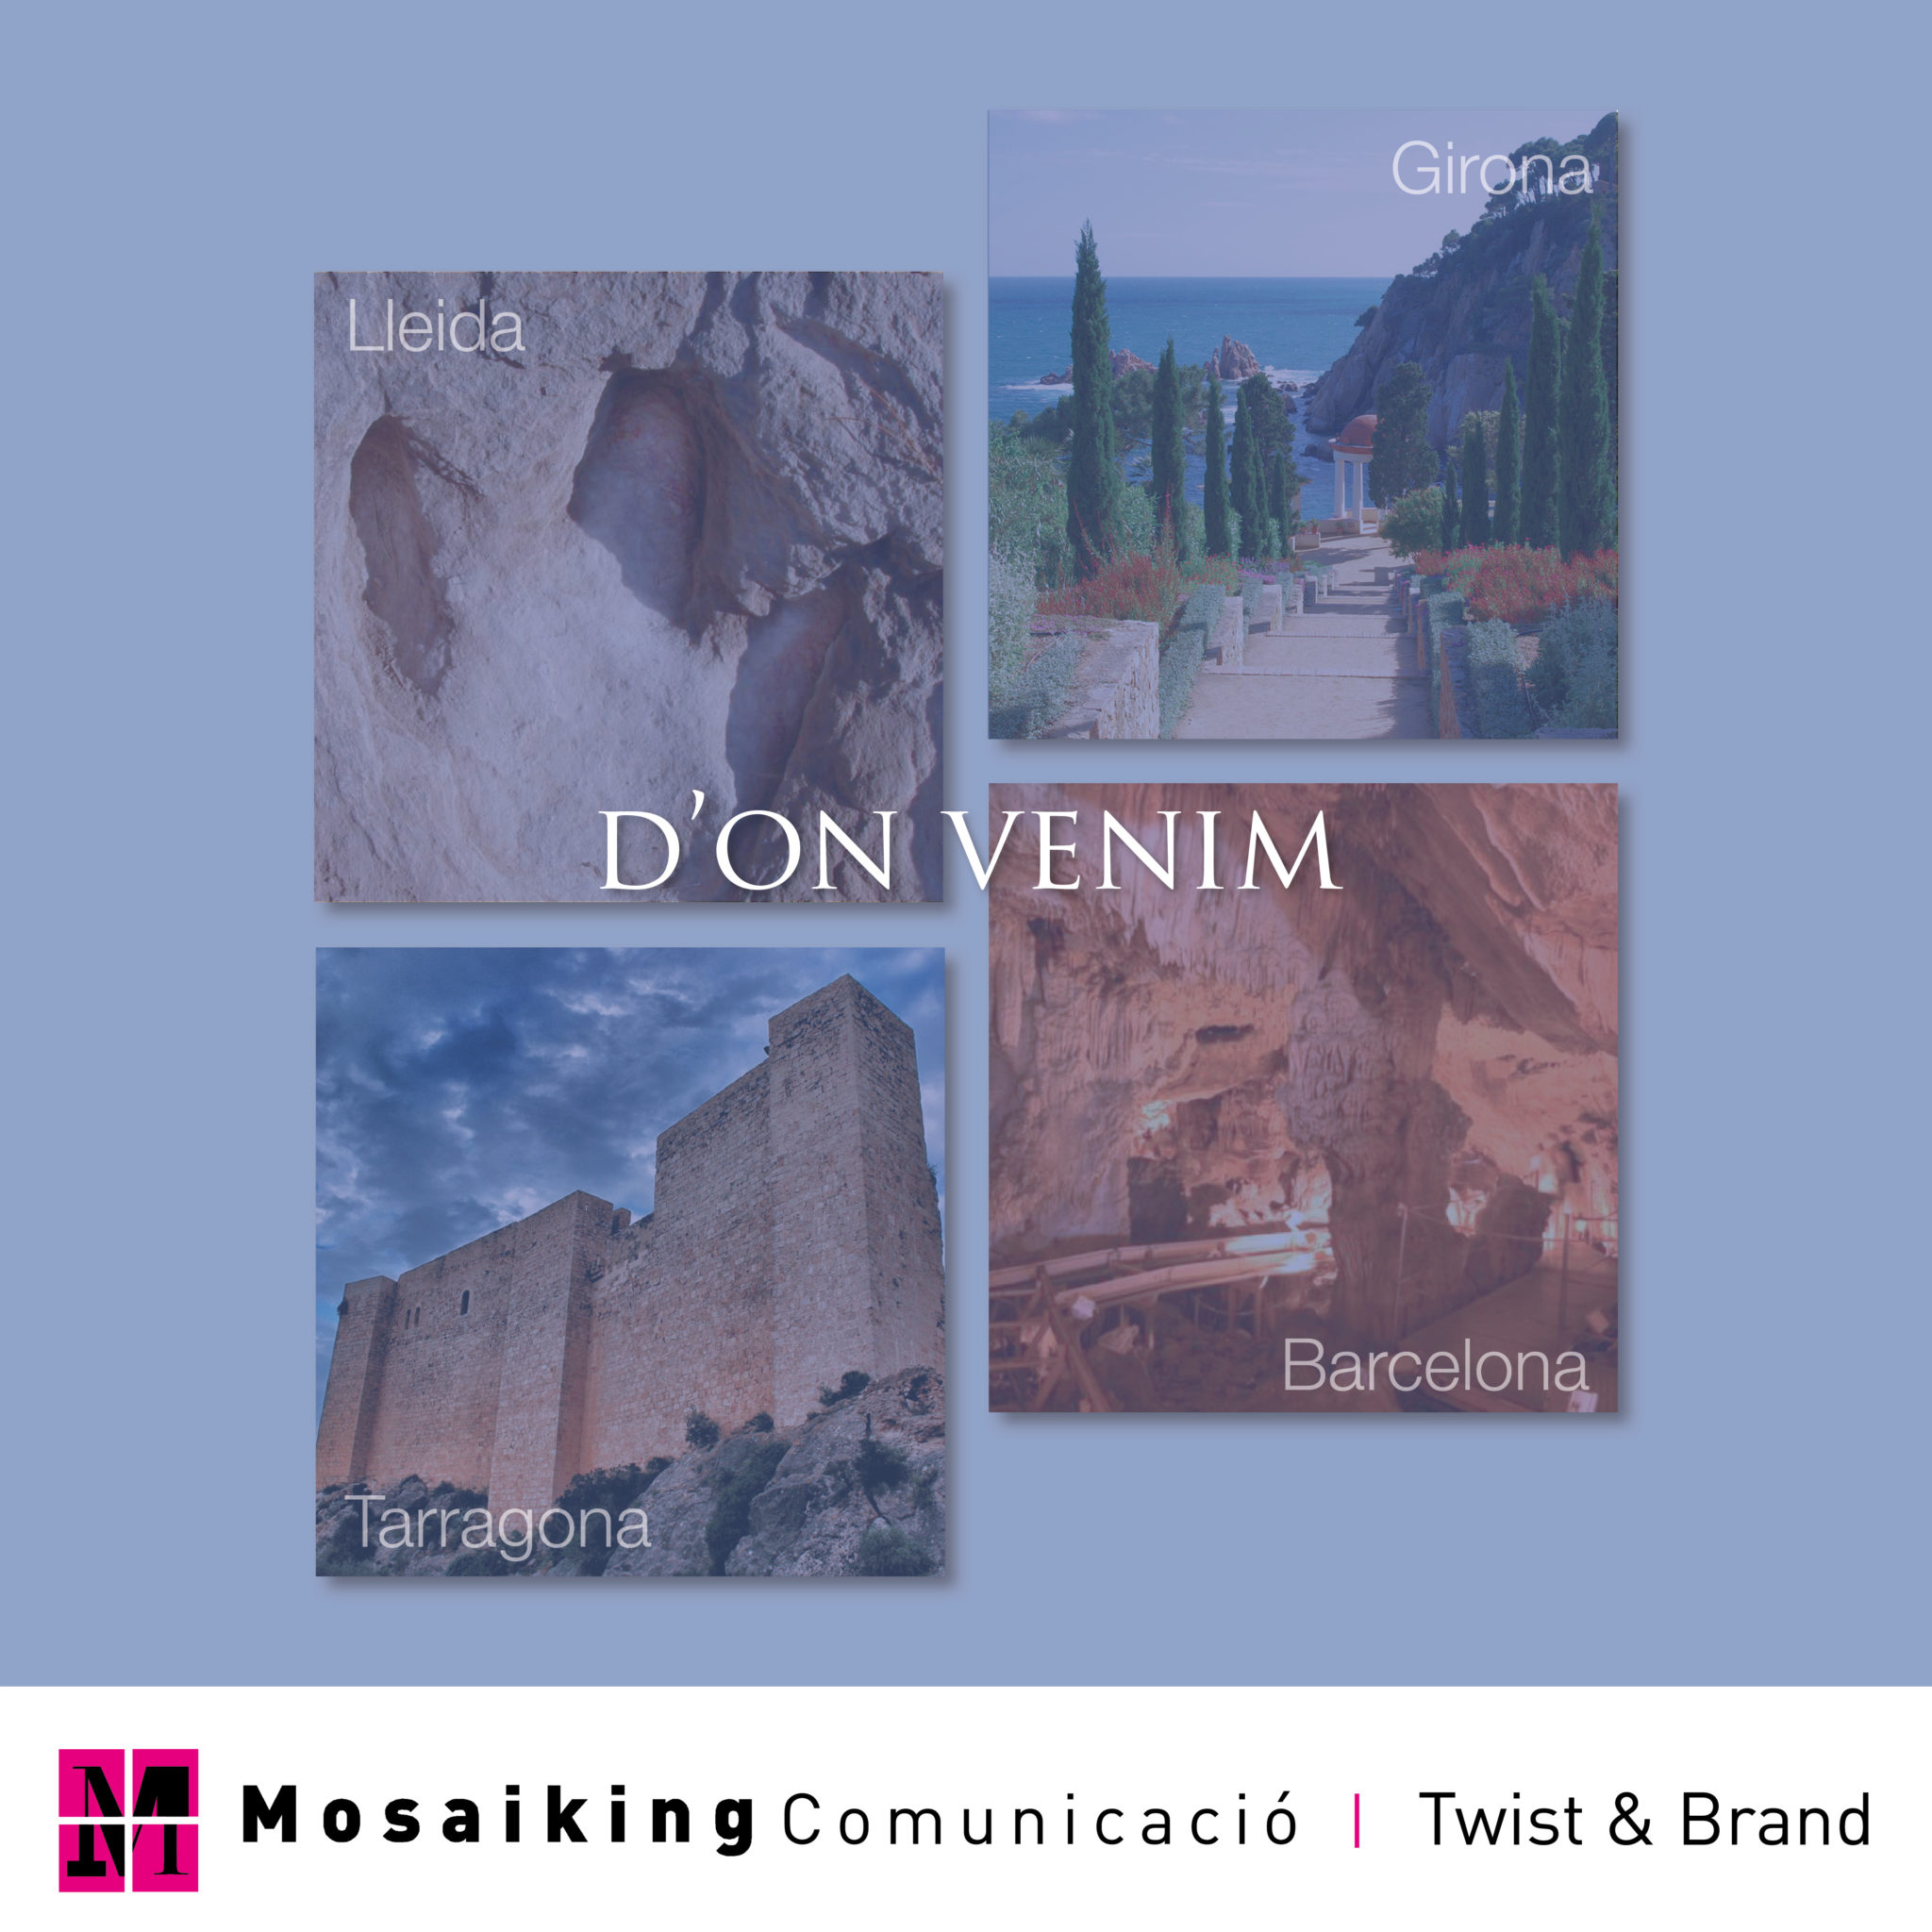 Mosaiking d'estiu – D'on venim